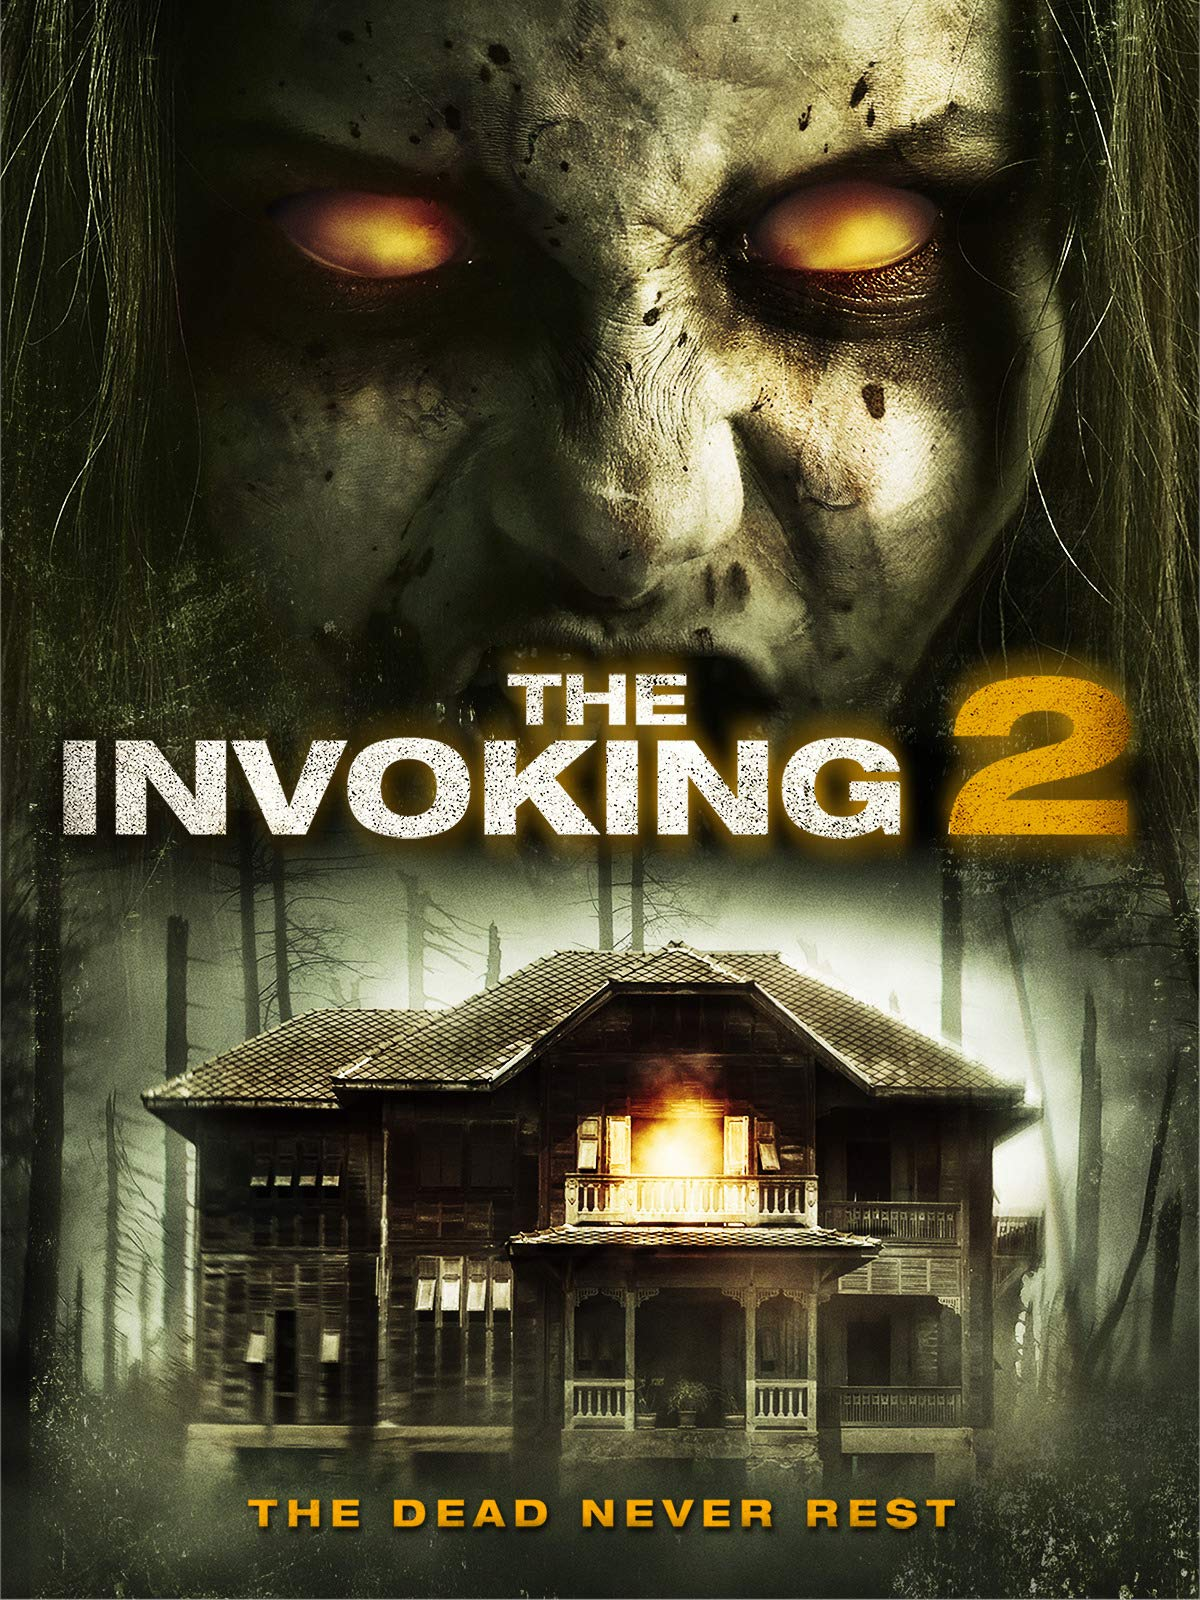 Watch The Invoking 2 on Amazon Prime Instant Video UK